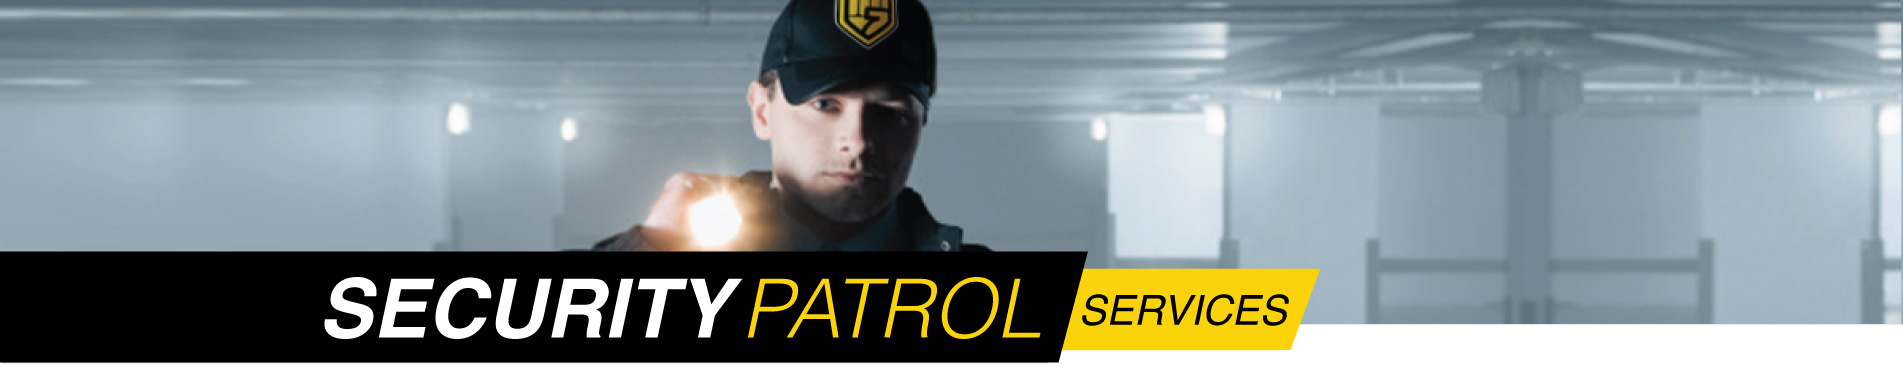 Houston area security patrol services